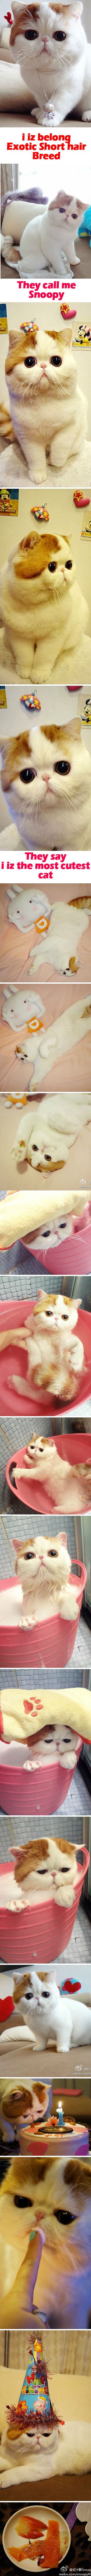 The most cutest cat in the world called Snoopy cat, it is exotic short hair breed, the only of it's kind lives in China. For more details click image